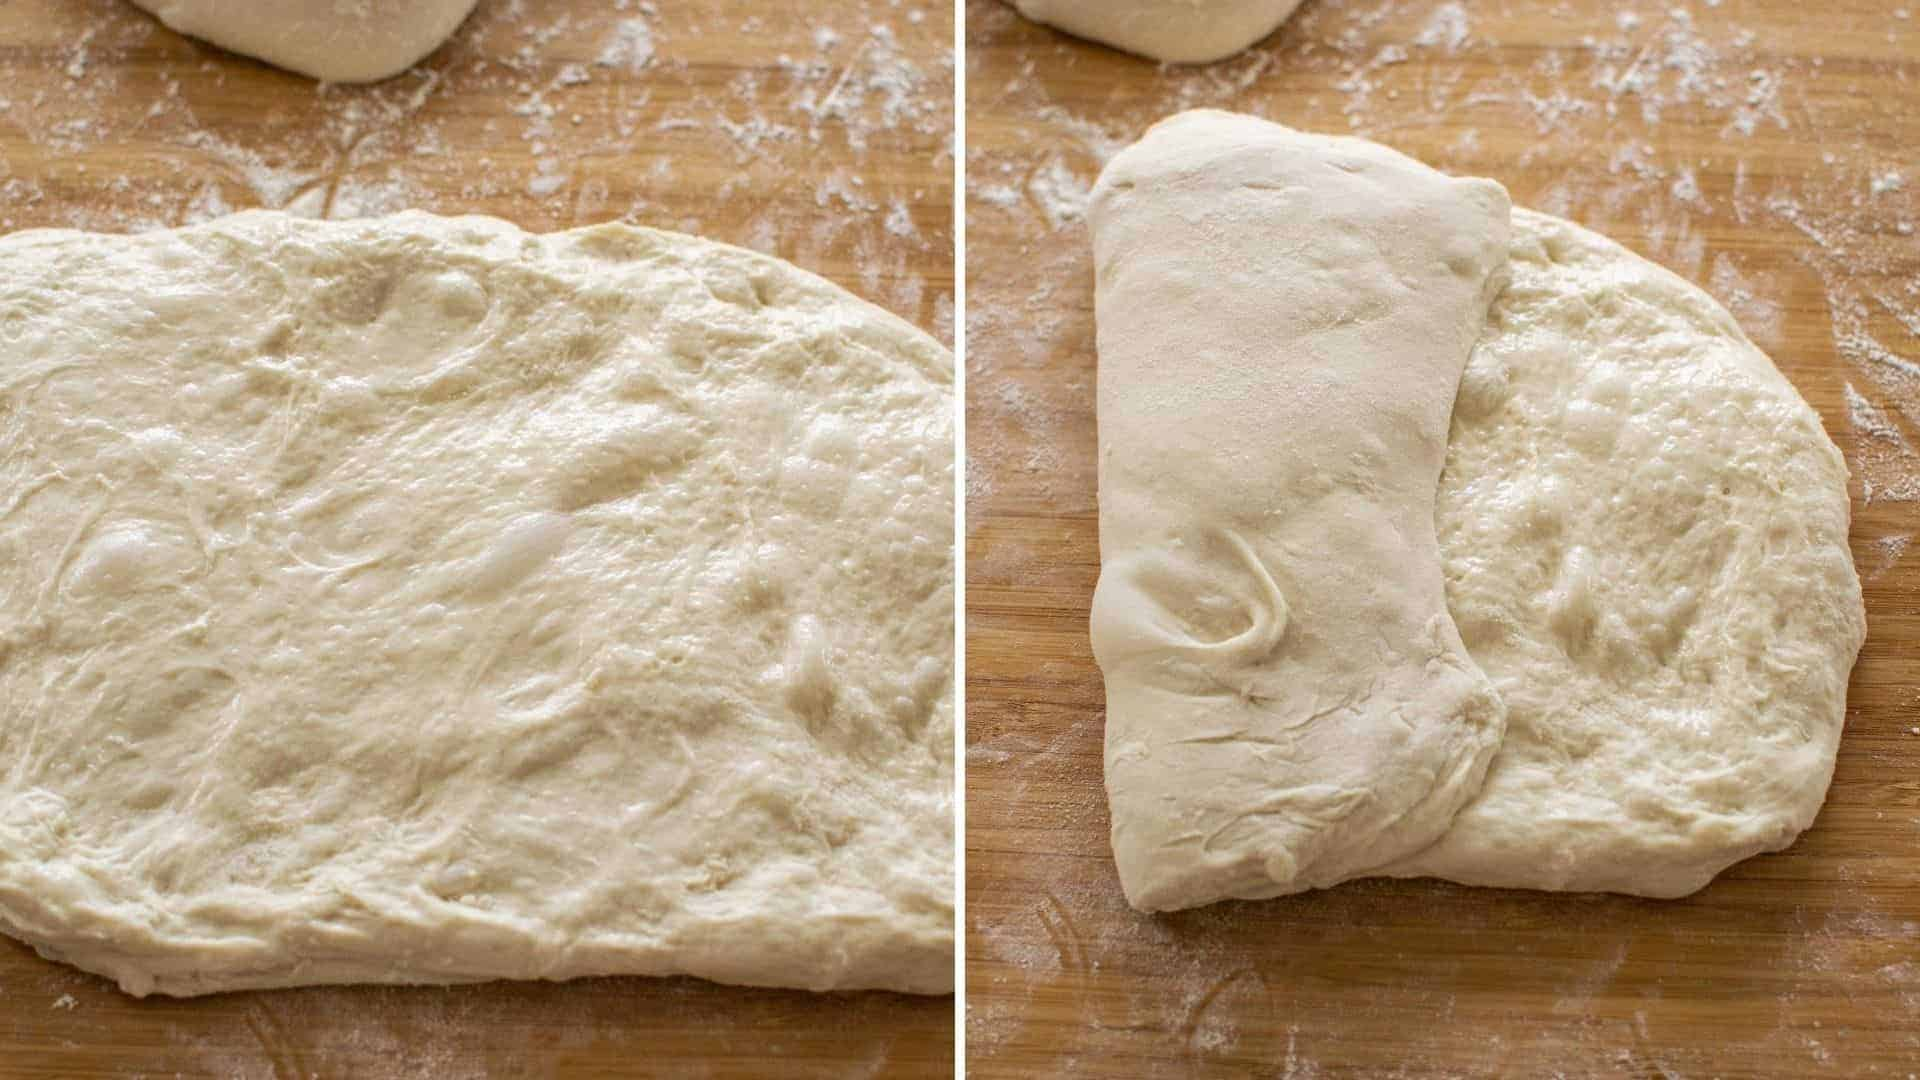 a rectangle of dough and a picture of the dough with one side folded in